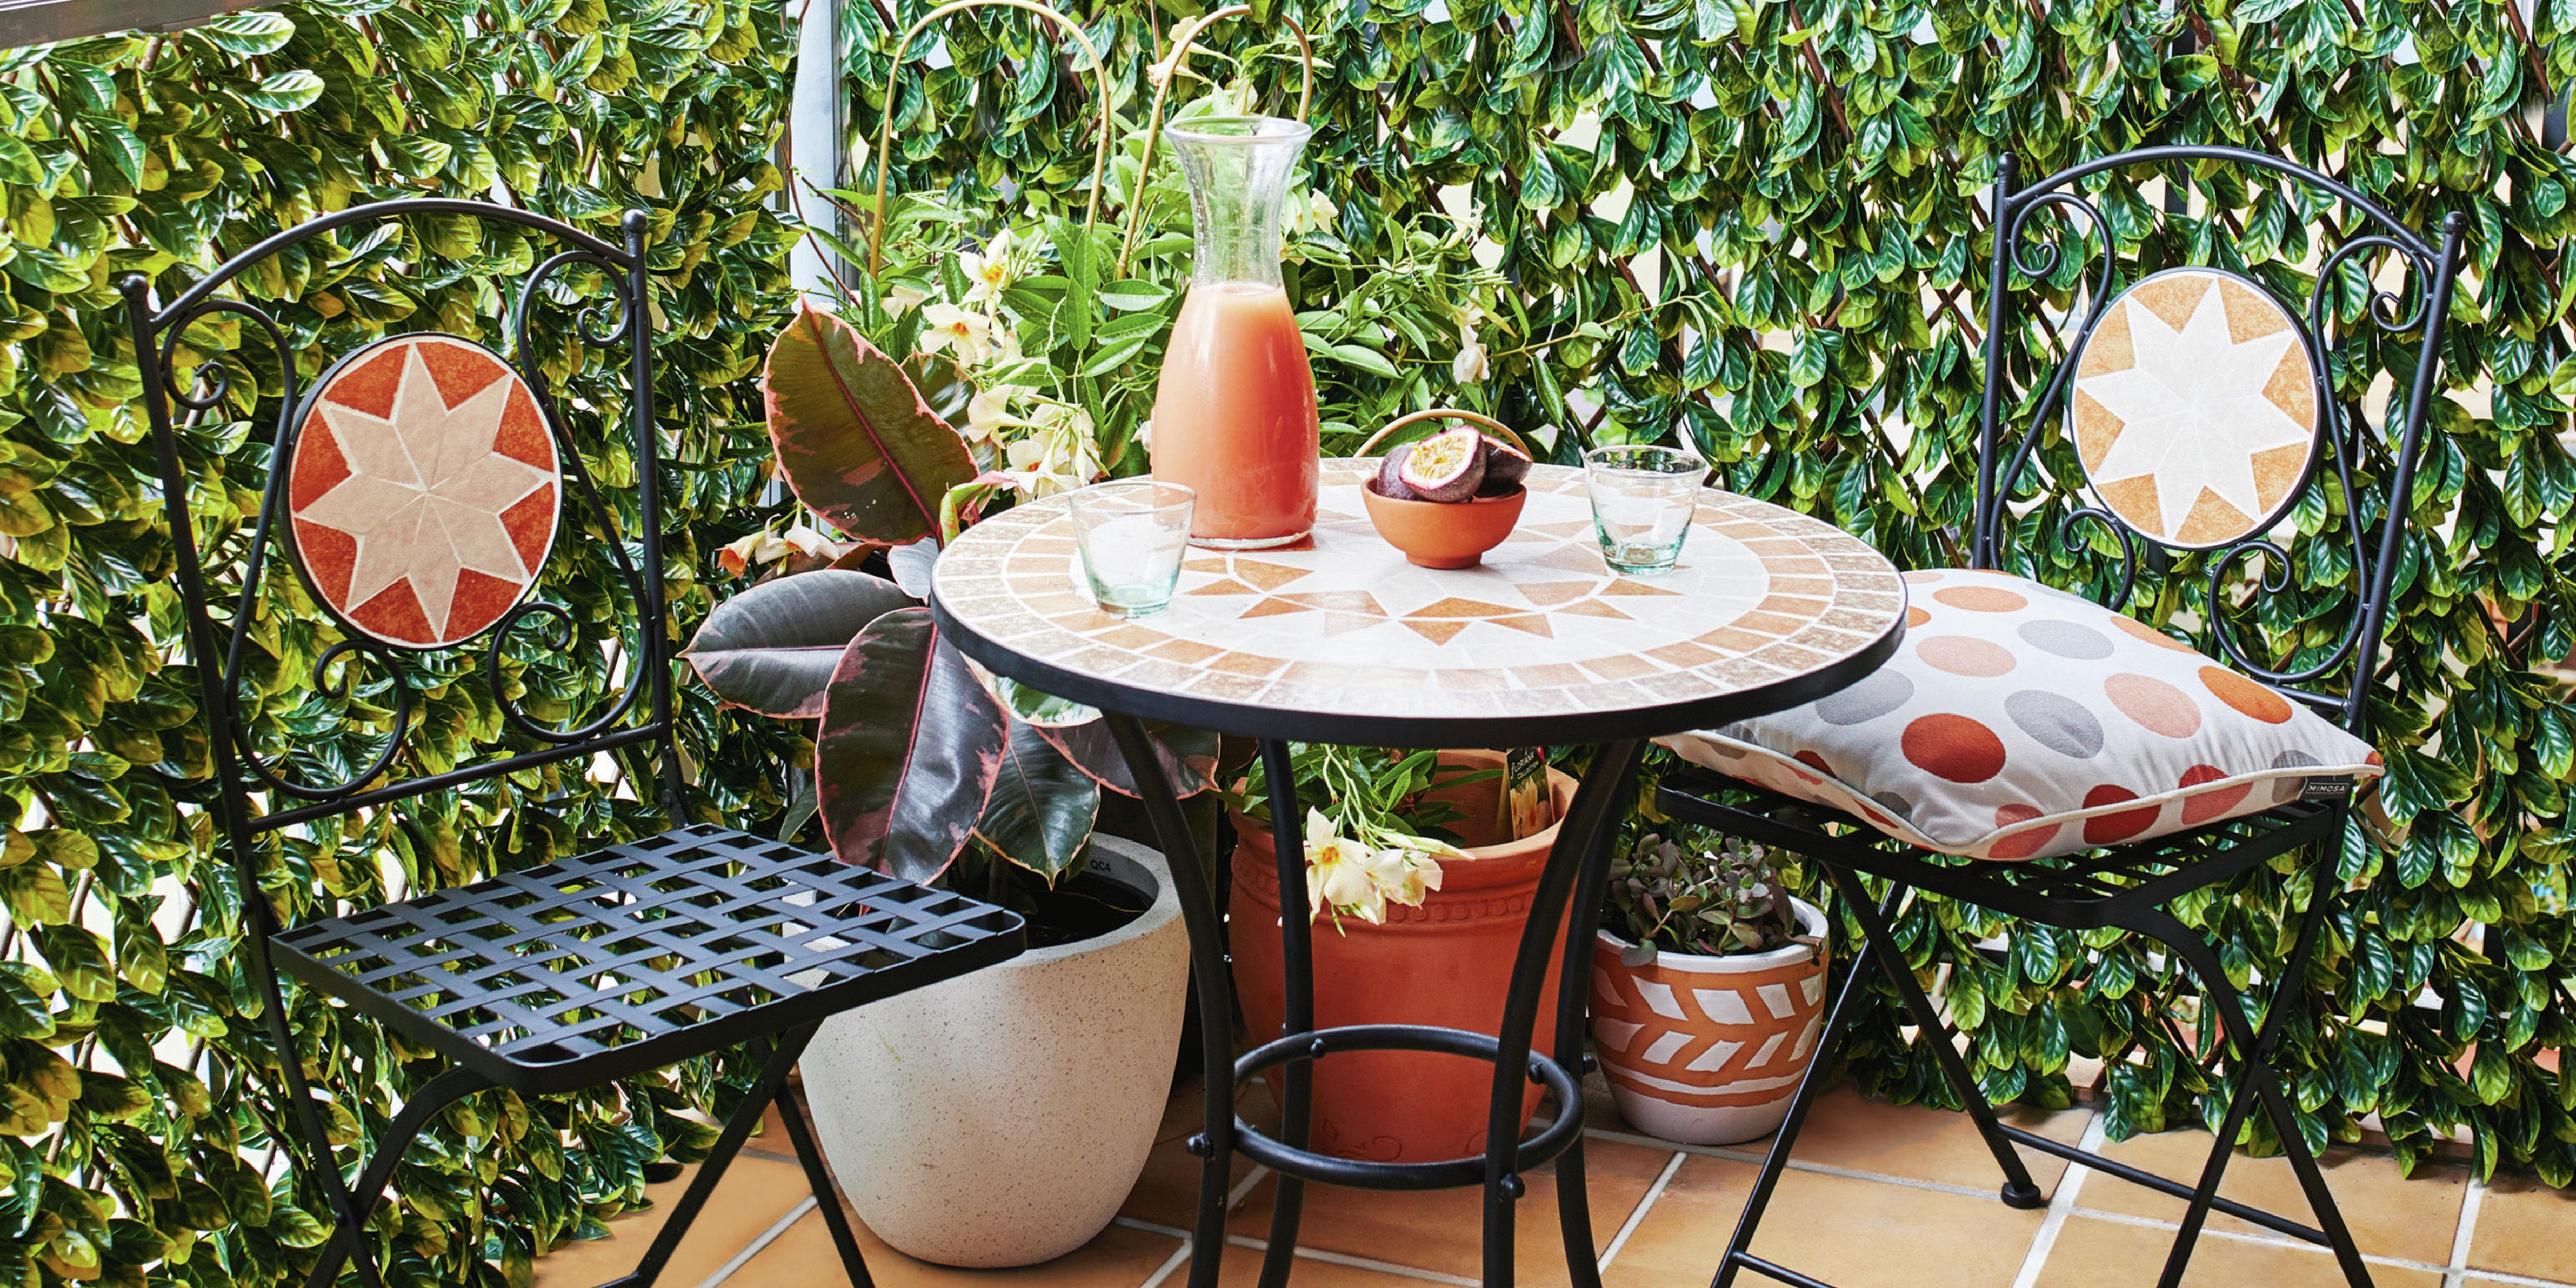 Outdoor sitting area with small table and two chairs surrounded by potted plants